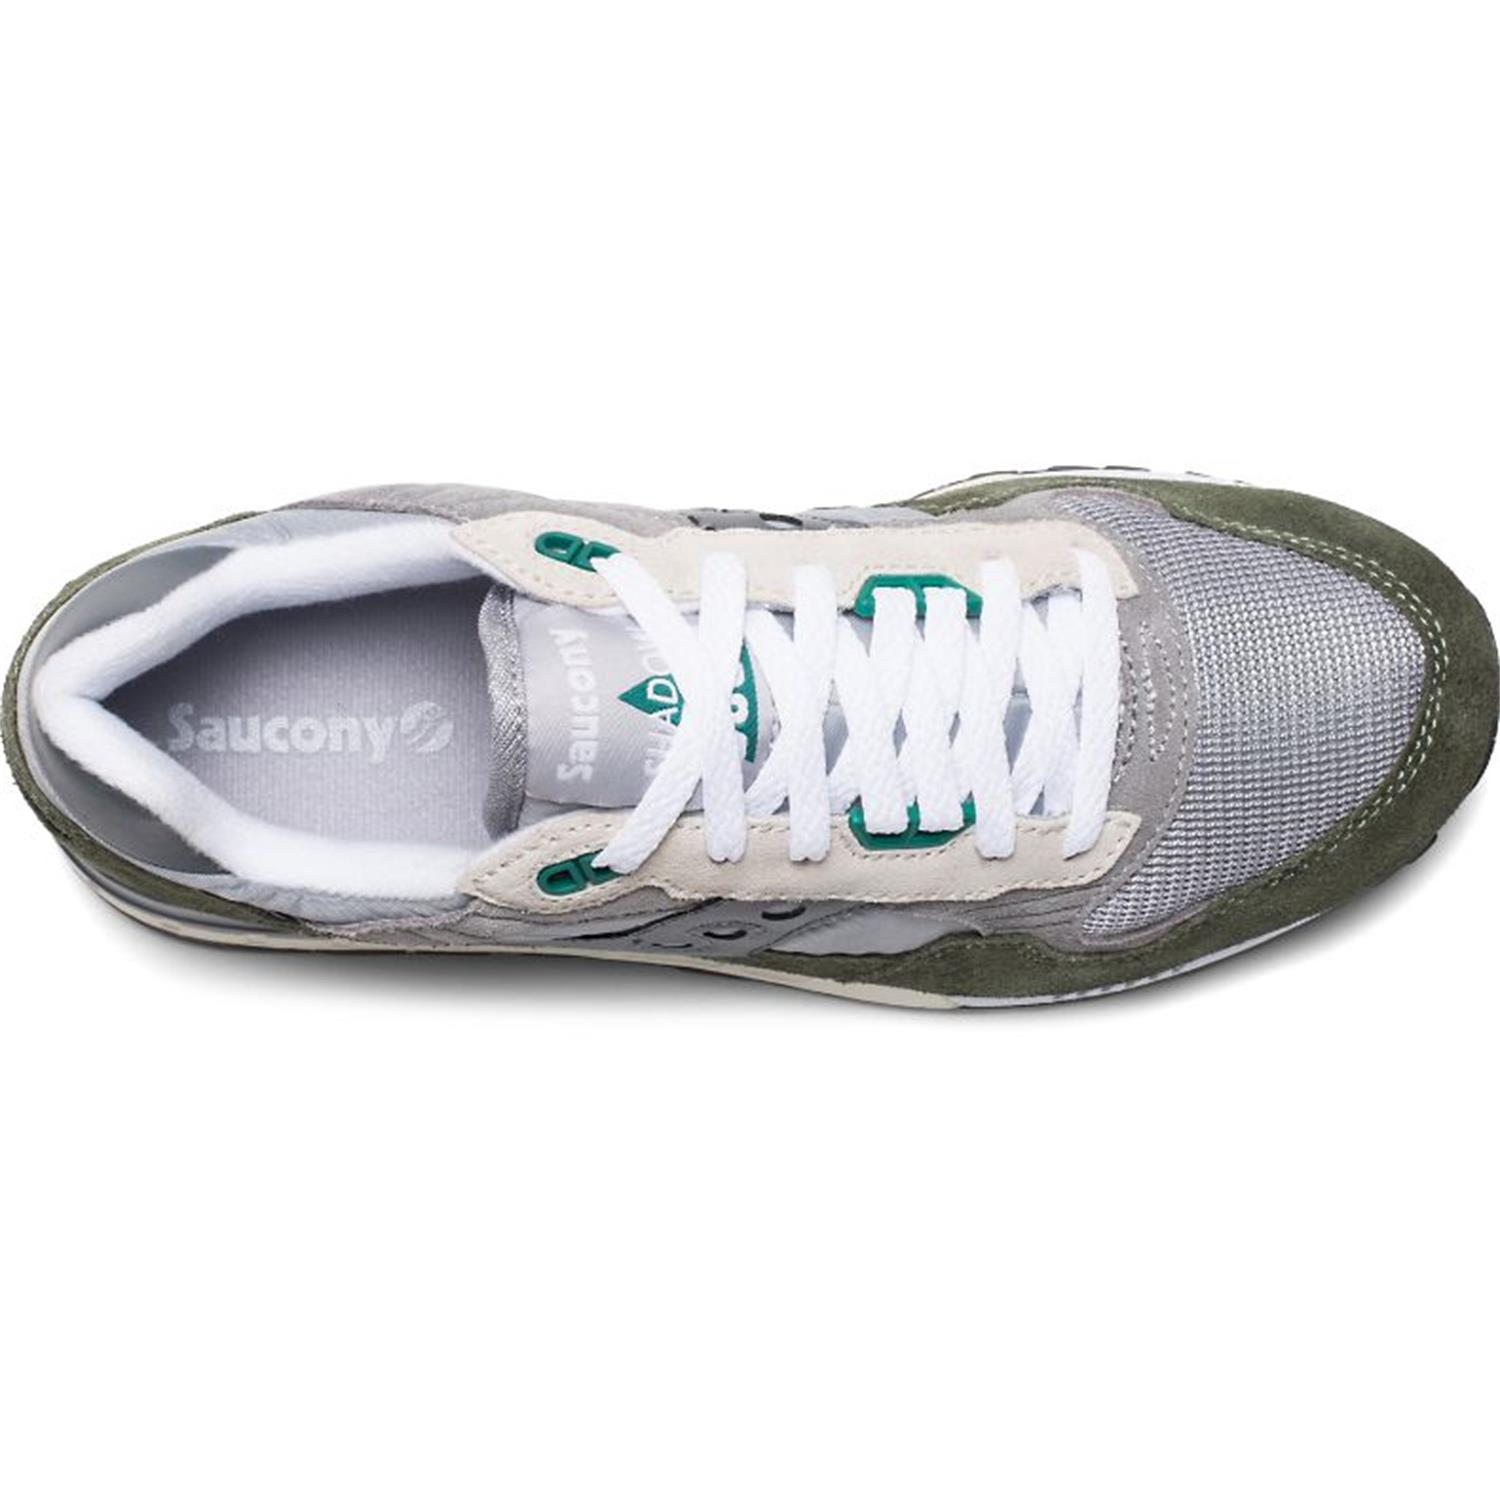 cheap for discount 97320 82b4c Saucony Shadow 500 Vintage